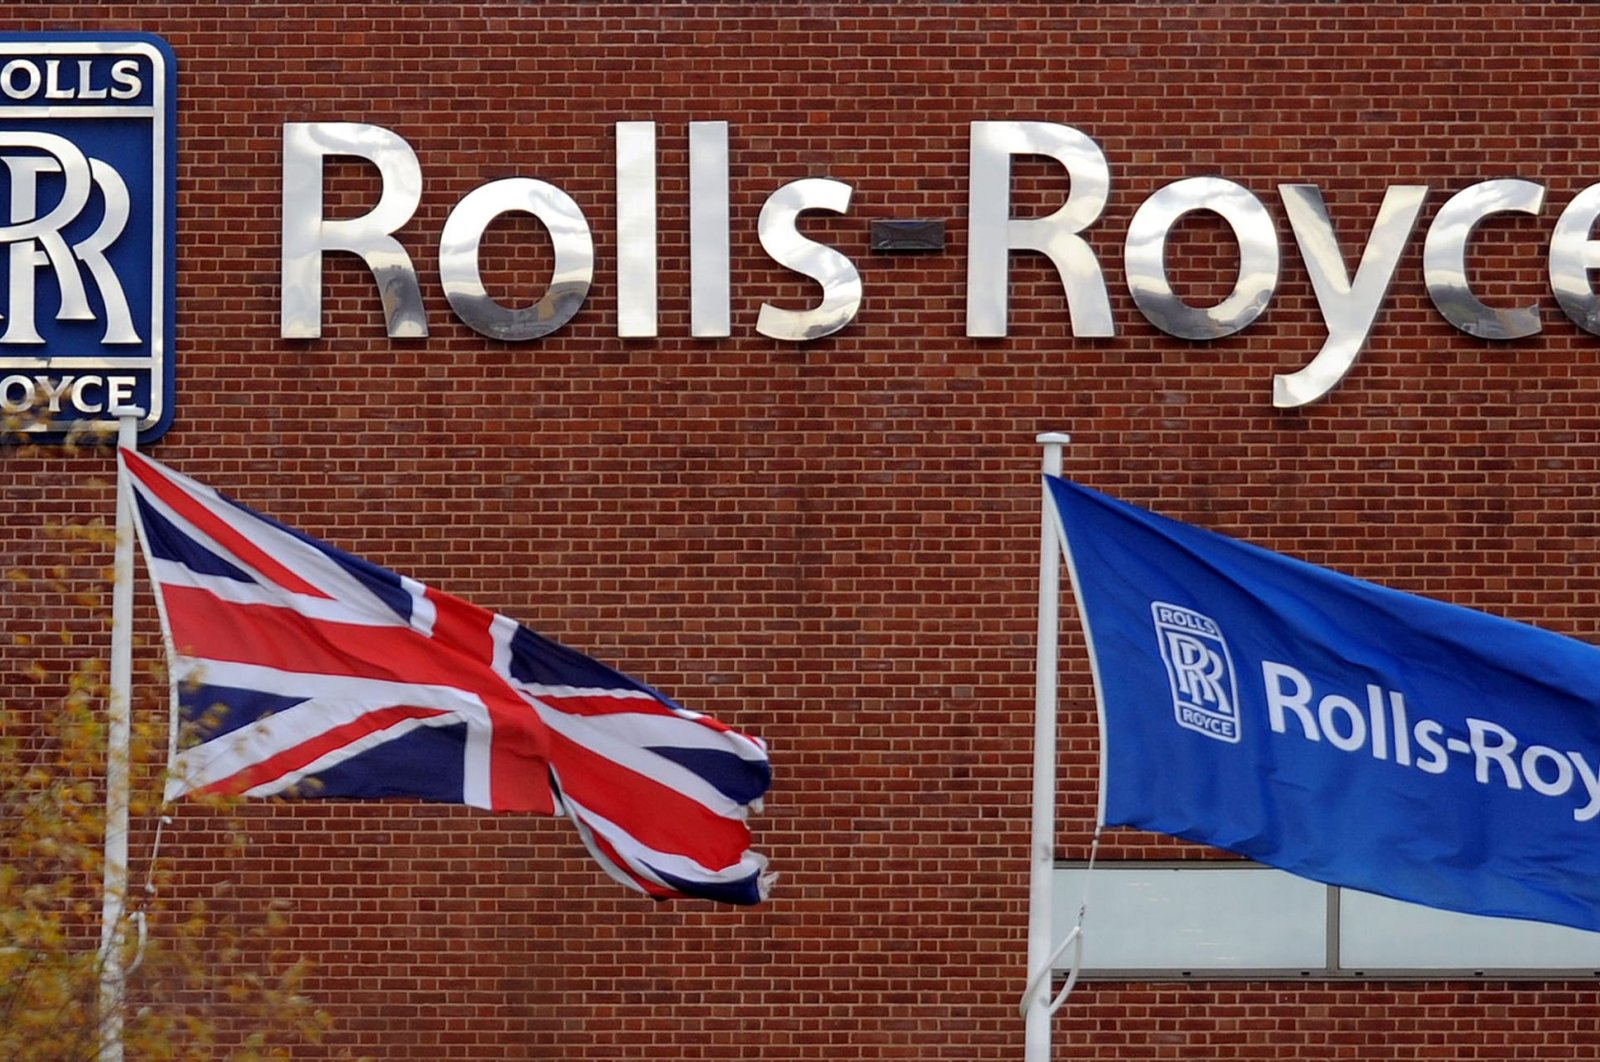 A general view of the Rolls Royce factory is pictured in Allenton, Derby, England, Turkey, Nov. 20, 2008. (AFP Photo)